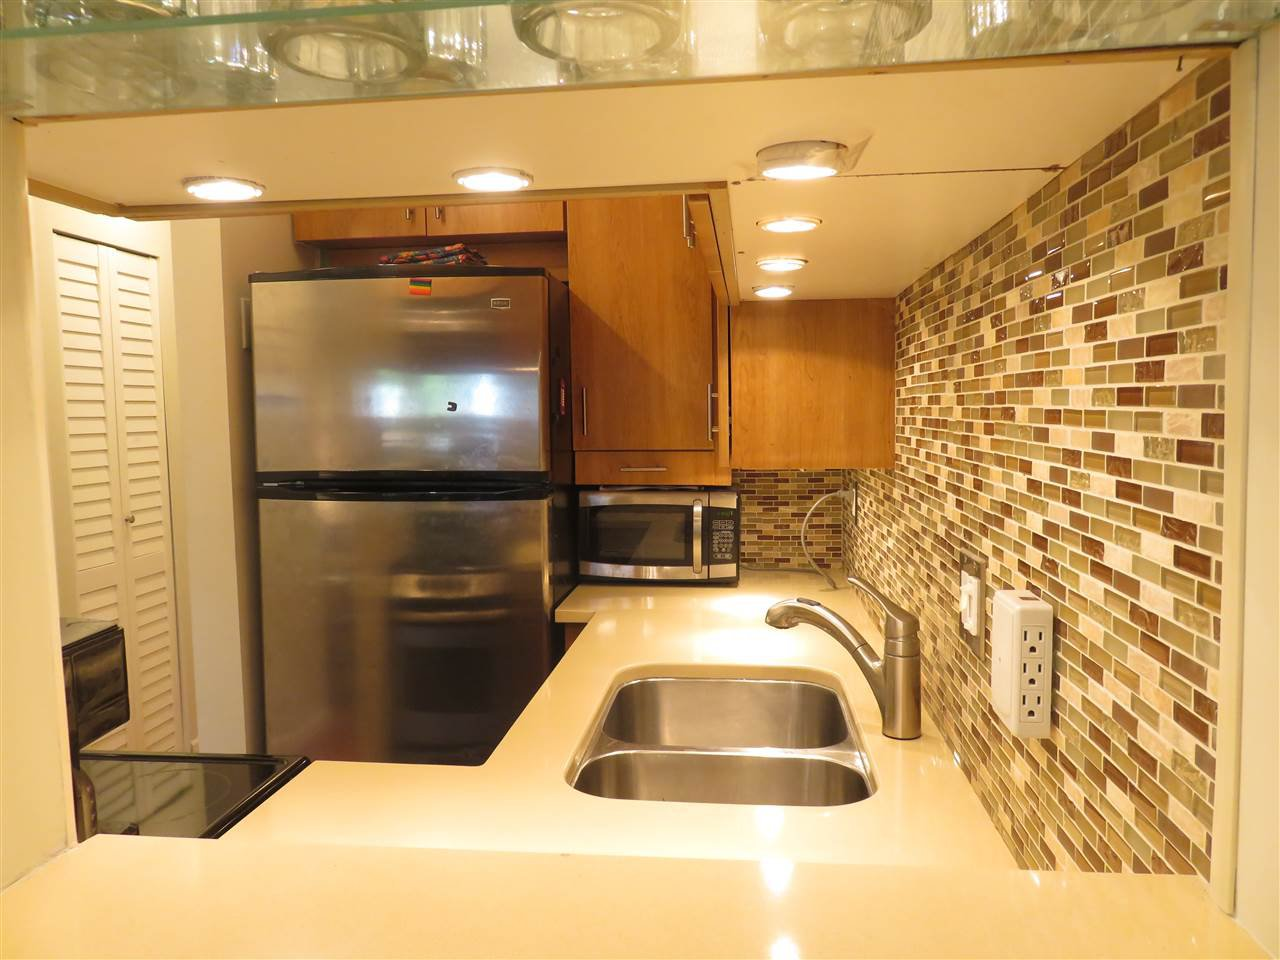 """Photo 7: Photos: 101 1930 W 3RD Avenue in Vancouver: Kitsilano Condo for sale in """"WESTVIEW"""" (Vancouver West)  : MLS®# R2169188"""